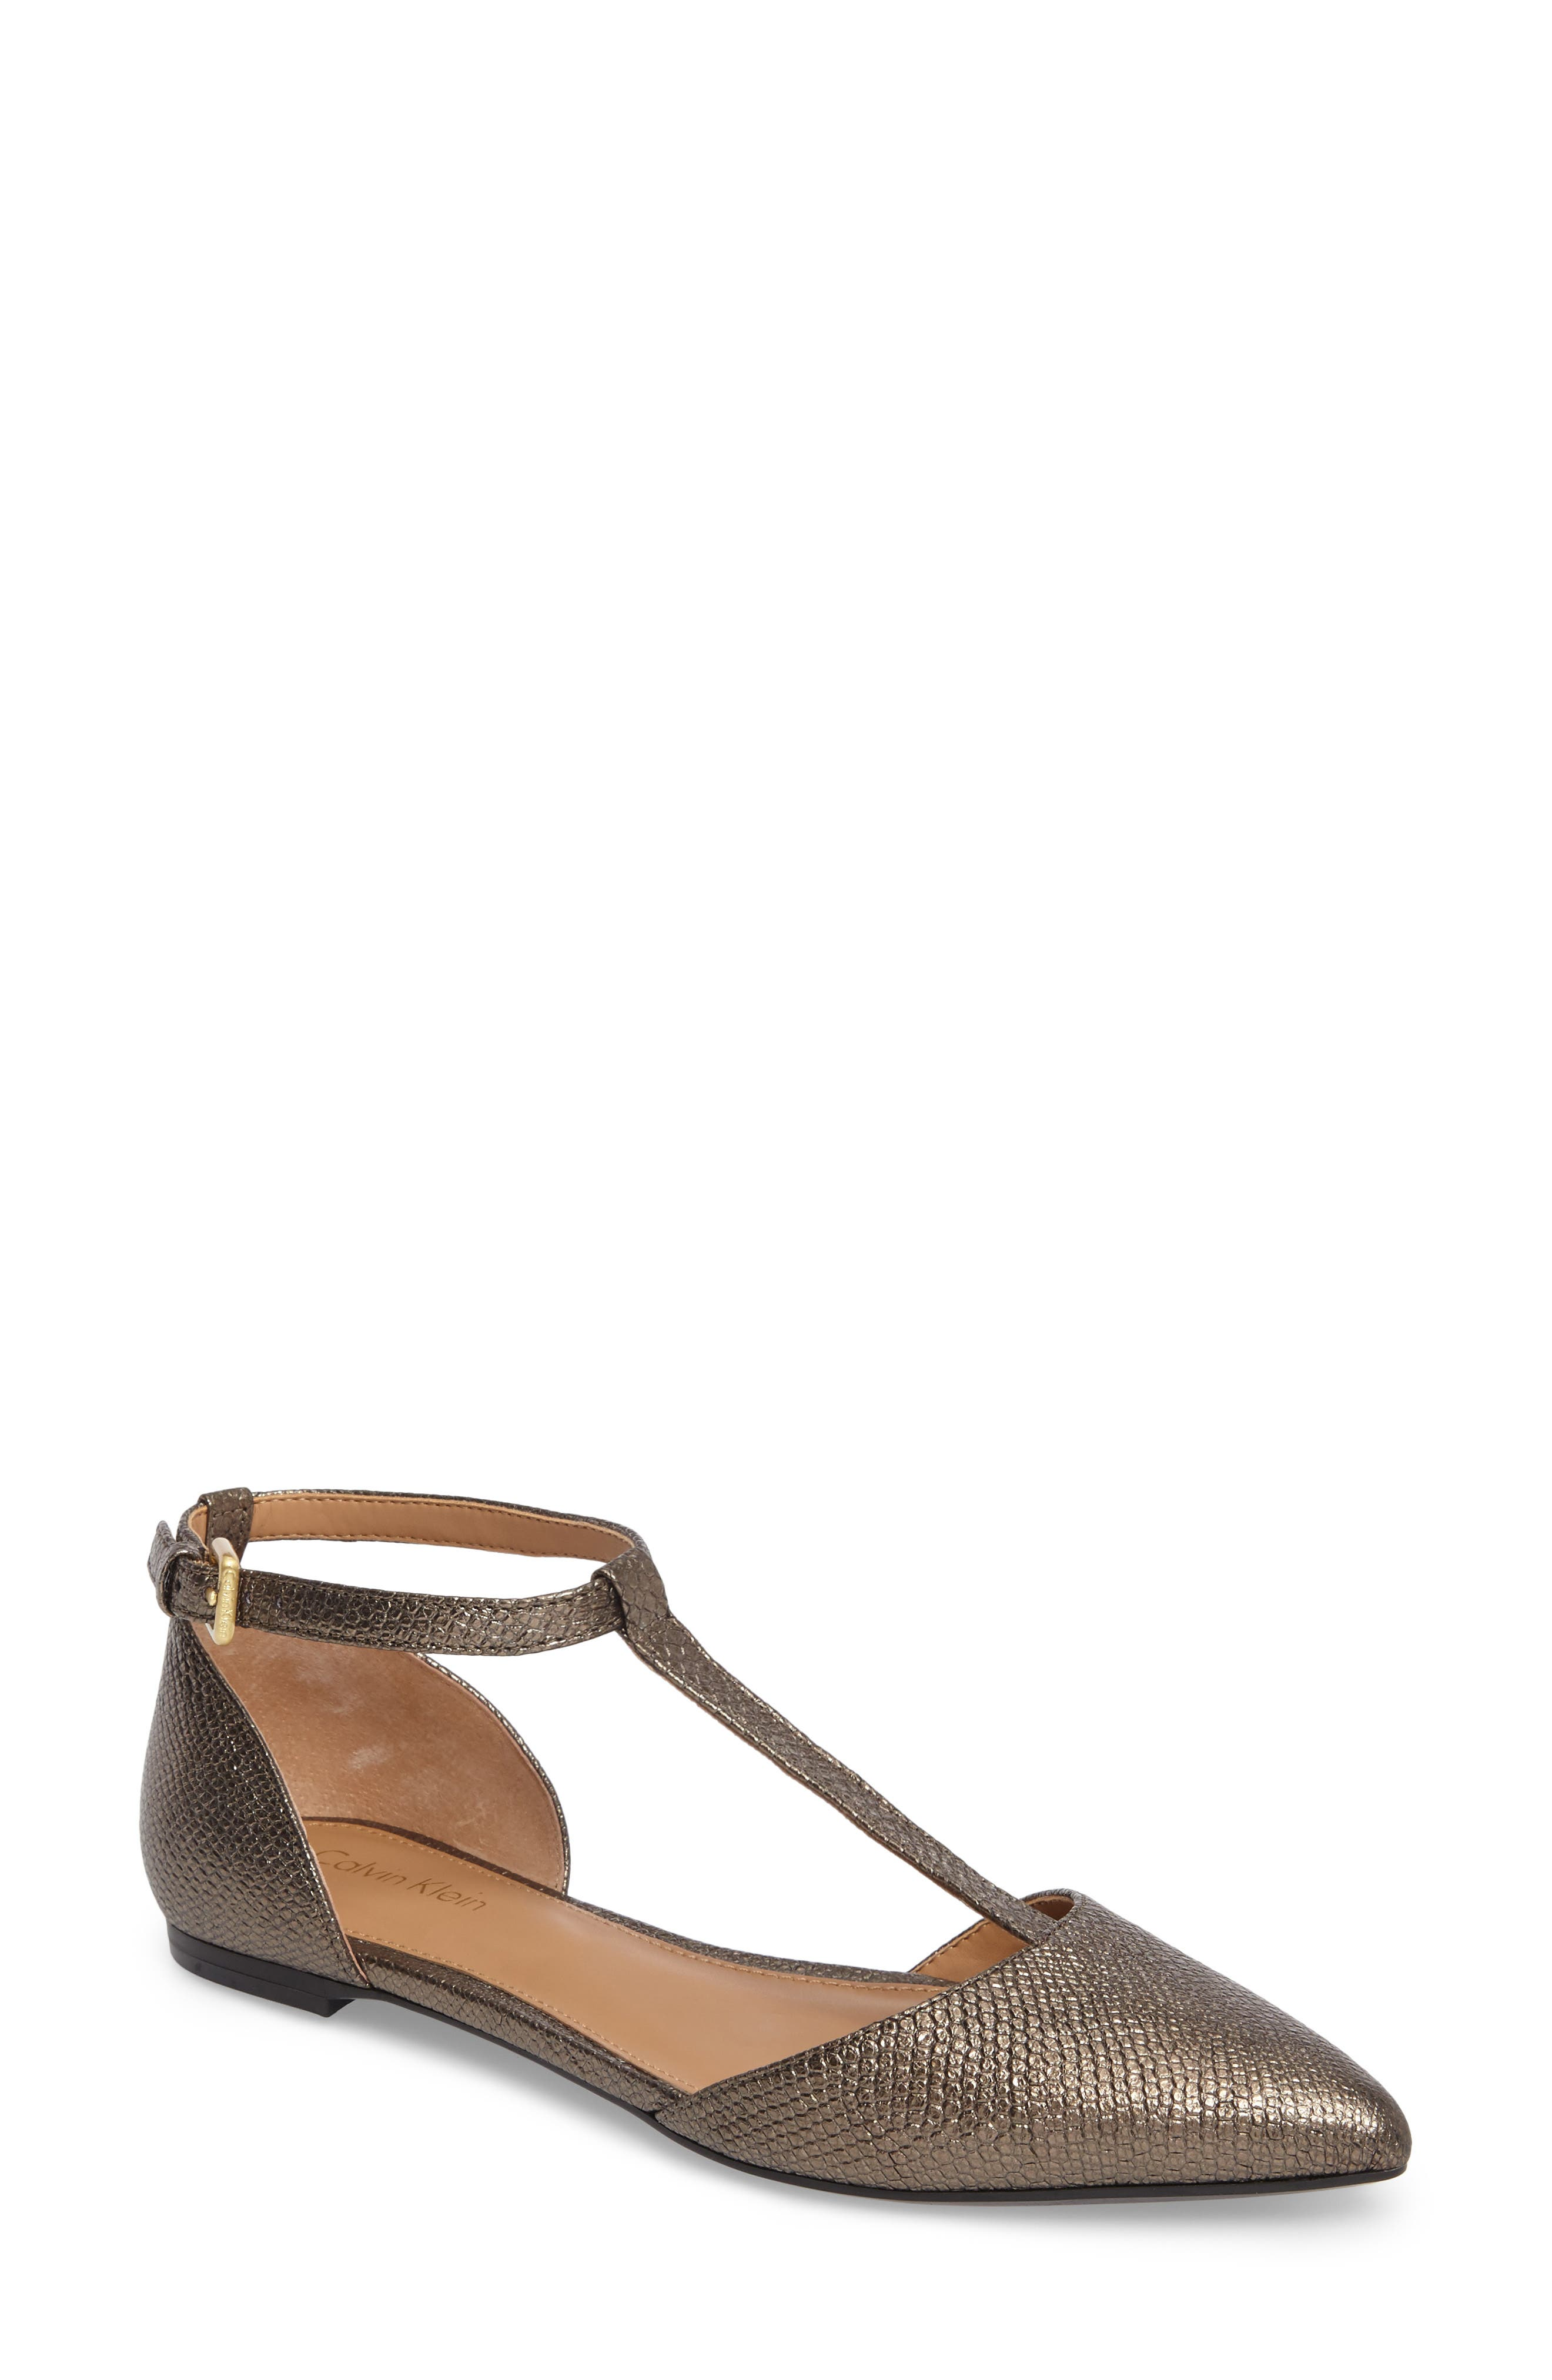 'Ghita' T-Strap Flat,                         Main,                         color, Gold Foiled Leather